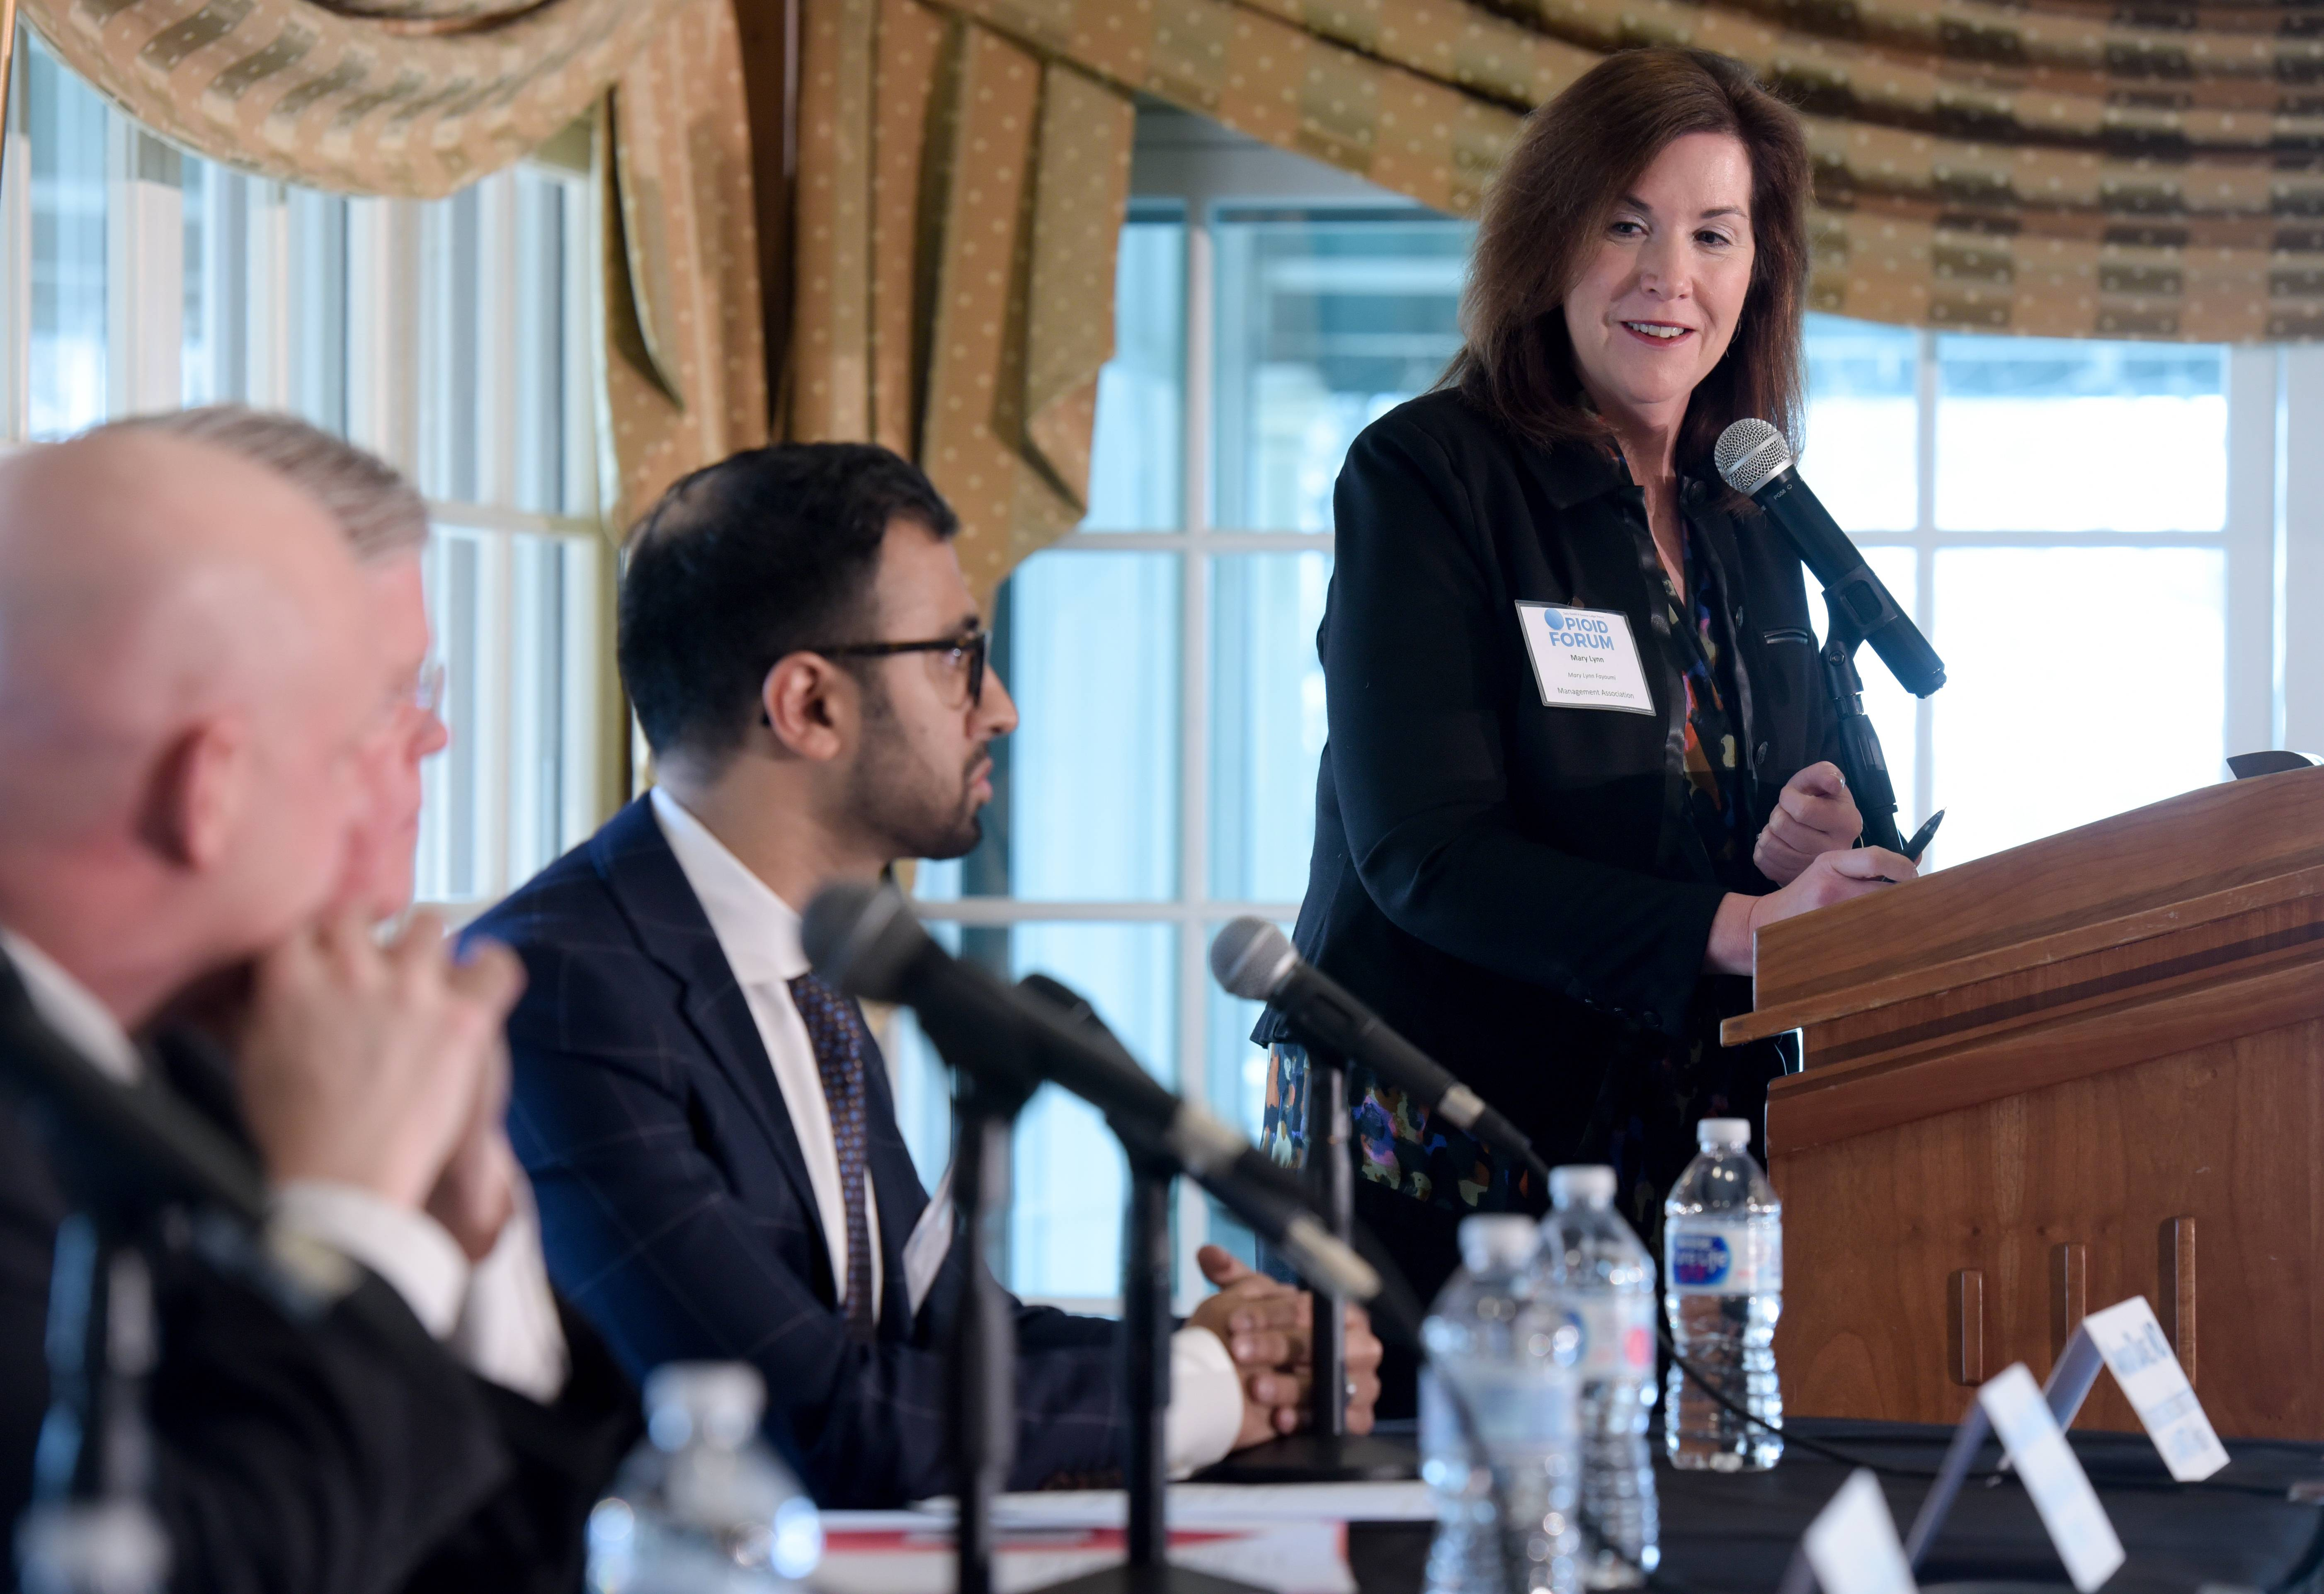 Mary Lynn Fayoumi served as moderator of a forum presented in Oak Brook Thursday by the Daily Herald Business Ledger that addressed opioid abuse and its impact on the workplace.